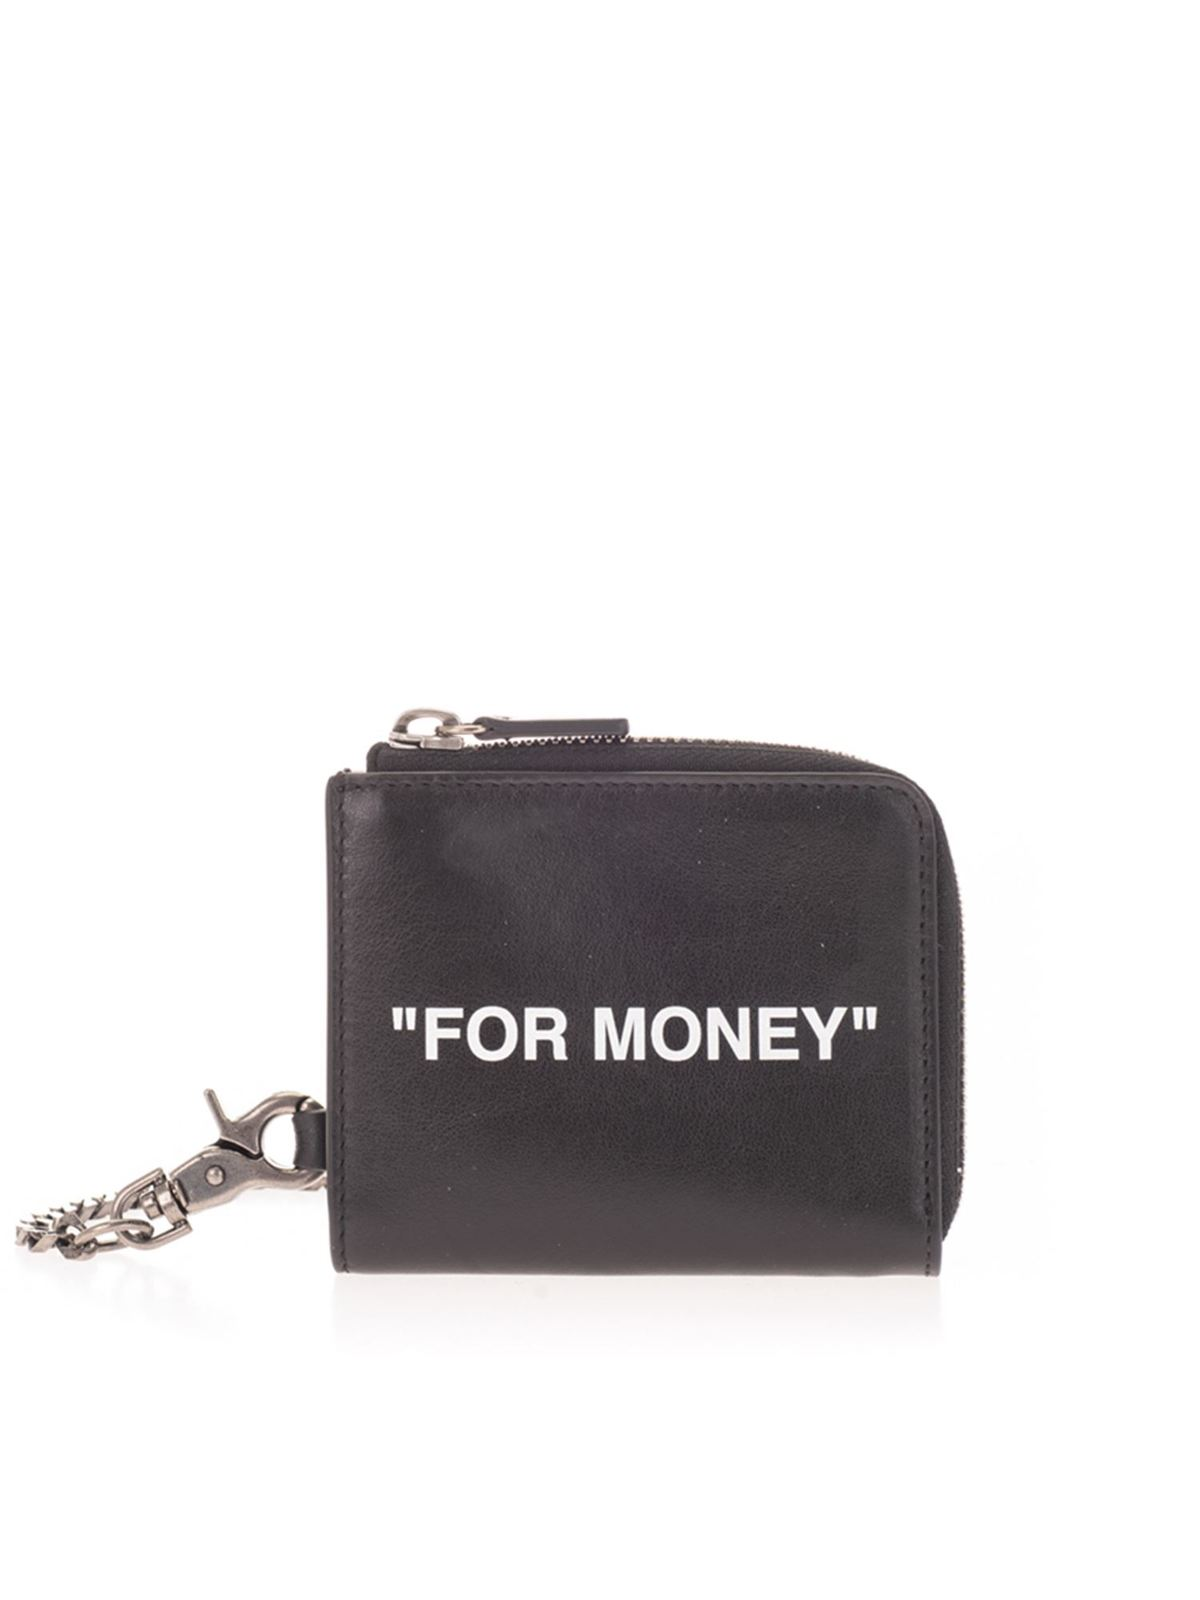 Off-White Wallets FOR MONEY COIN PURSE IN BLACK